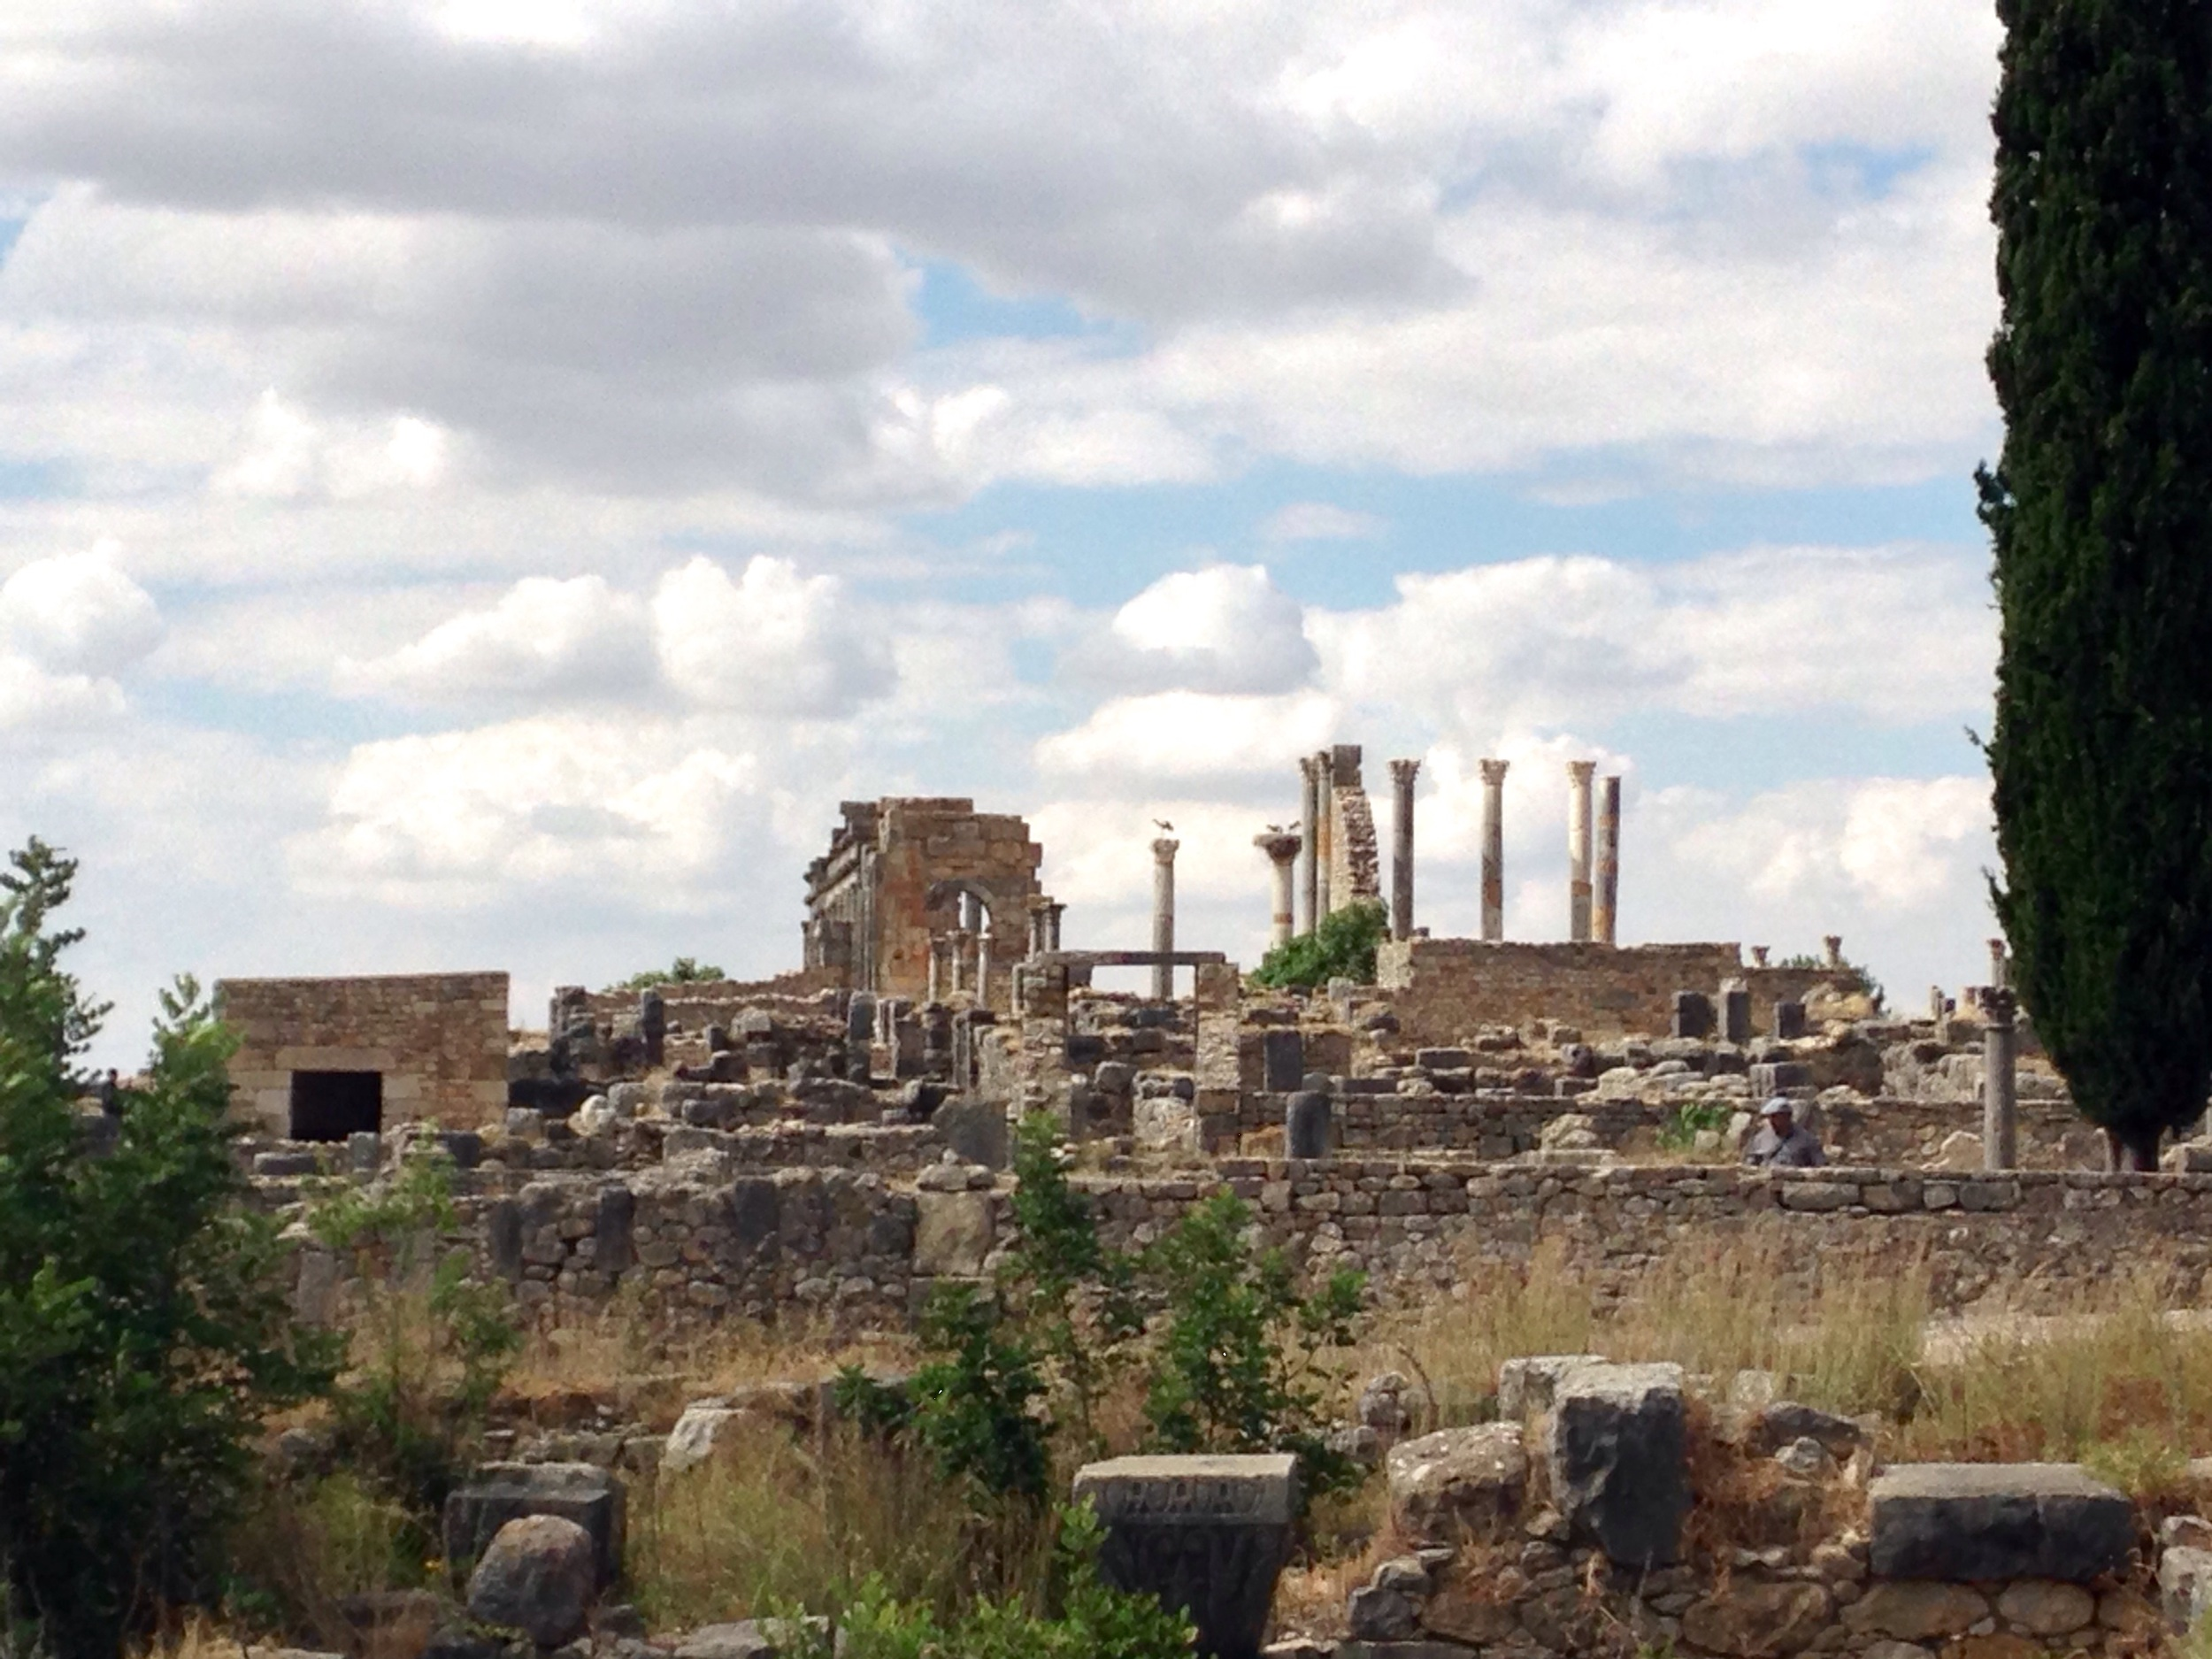 The ruins of Volubilis.